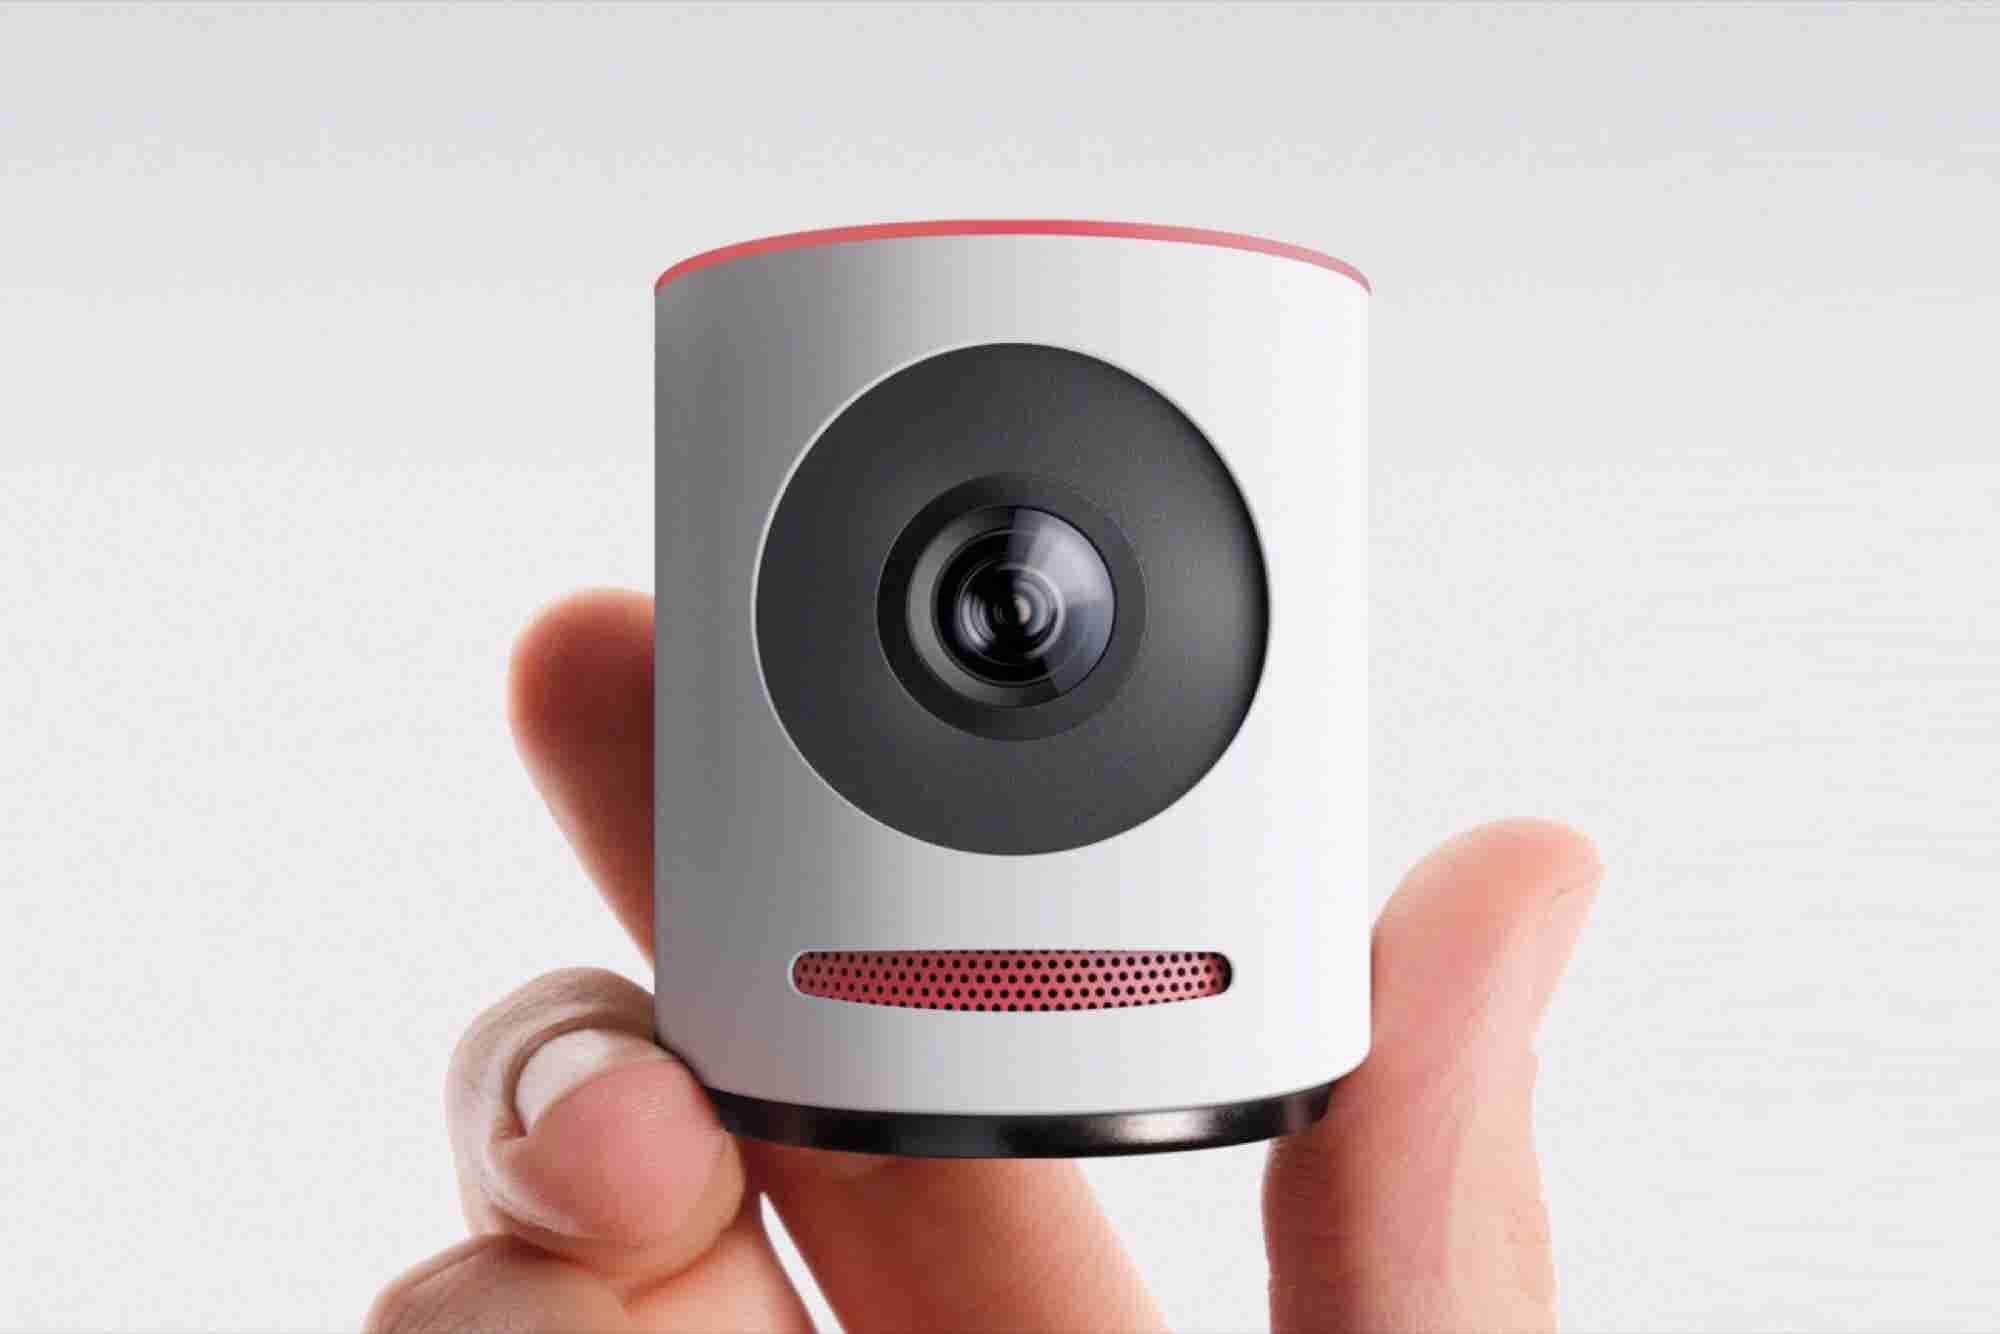 Easily Stream Video Live to Facebook With This Little Device